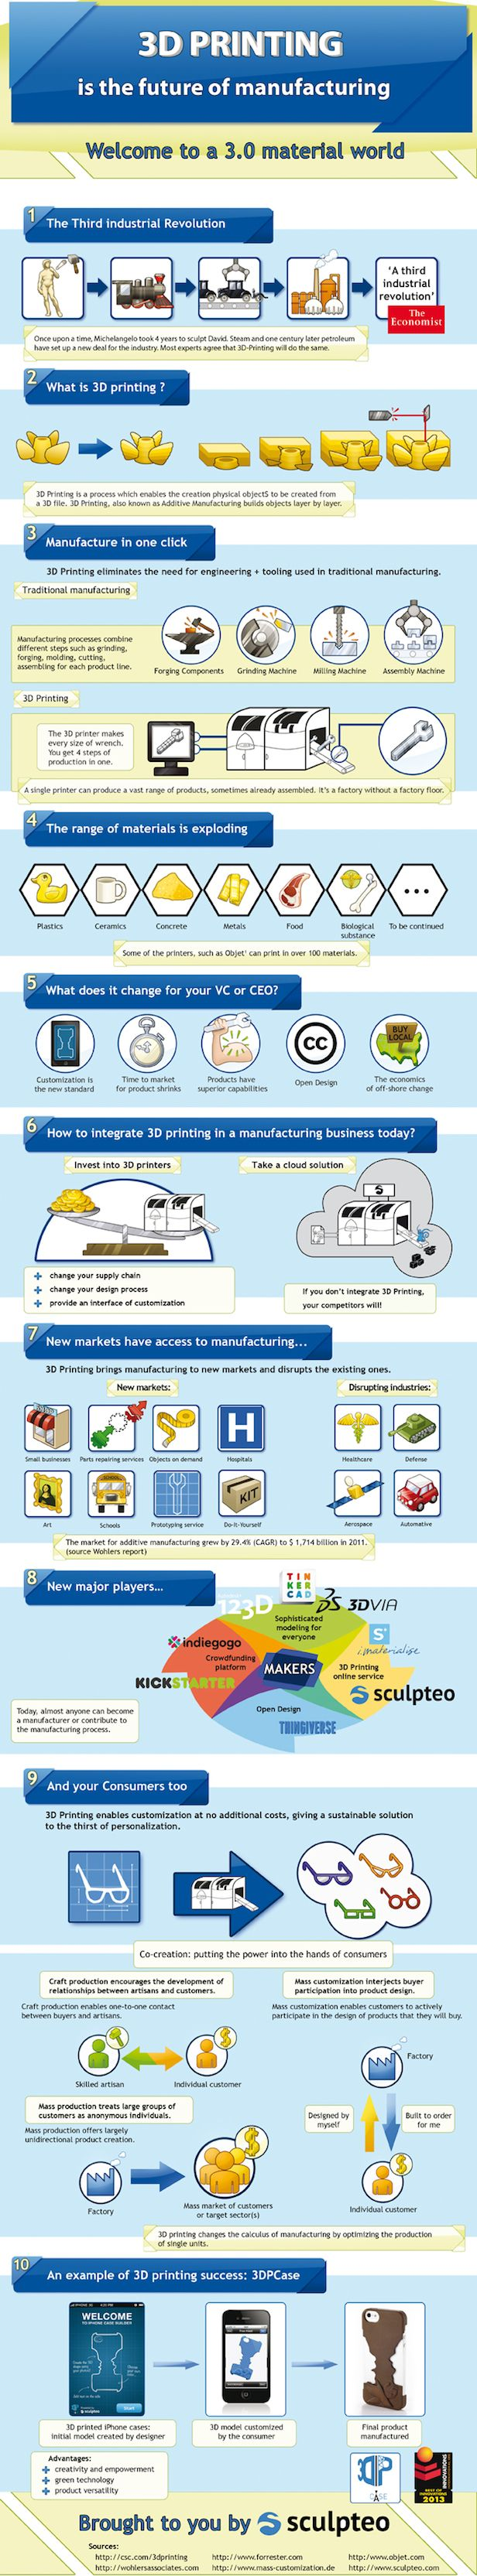 Infographic: 3D printing future of manufacturing